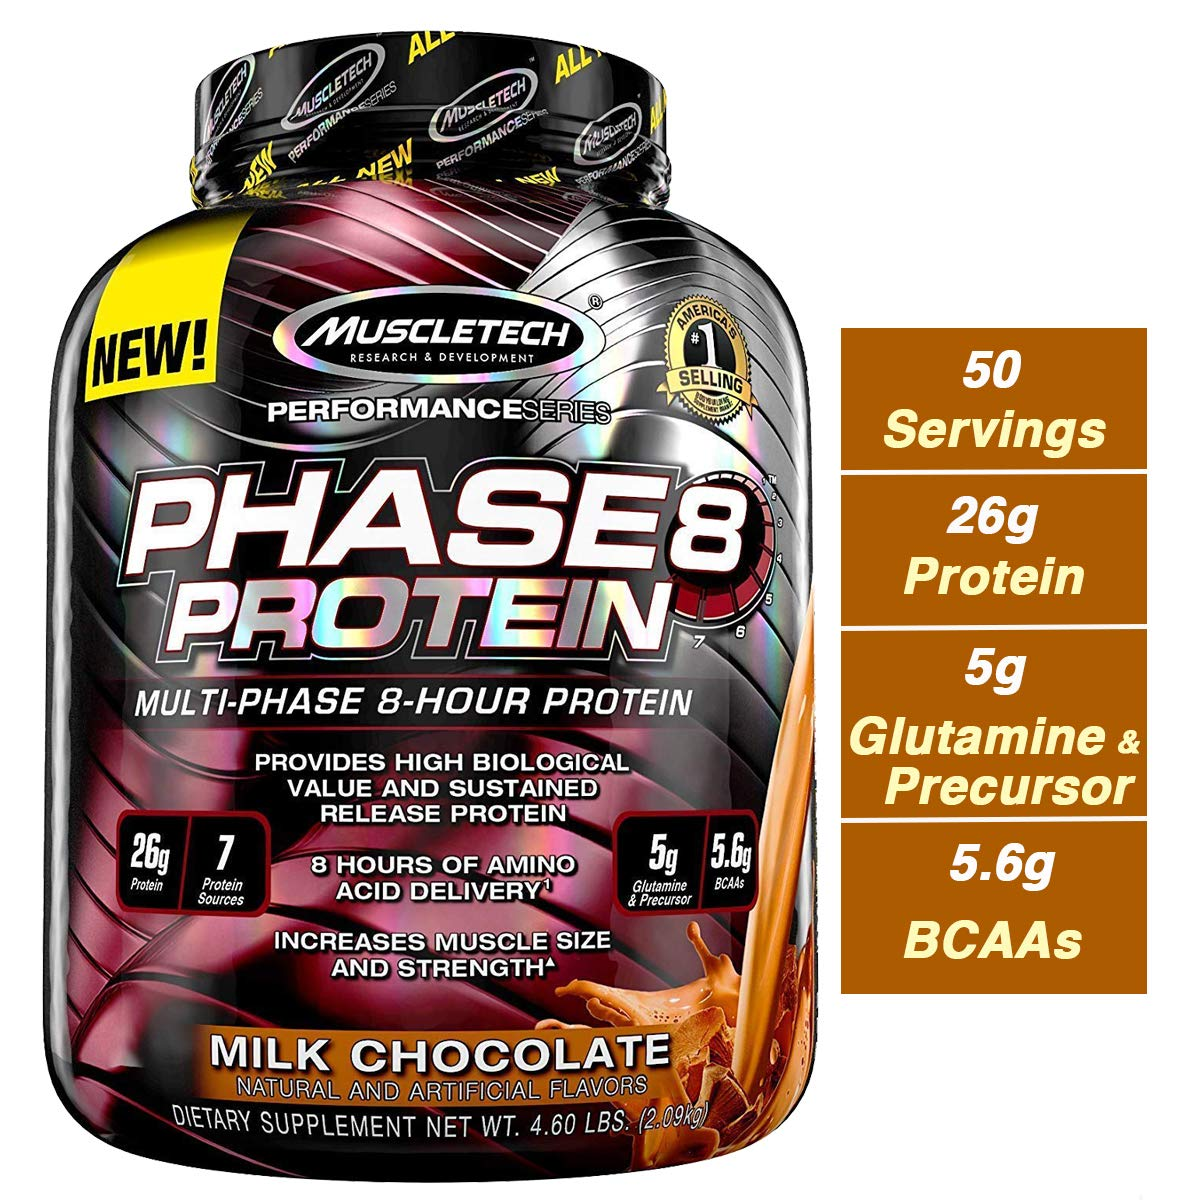 MuscleTech Phase8 Whey Protein Powder Blend, Sustained Release 8-Hour Protein Shake, Milk Chocolate, 4.6 Pound by MuscleTech